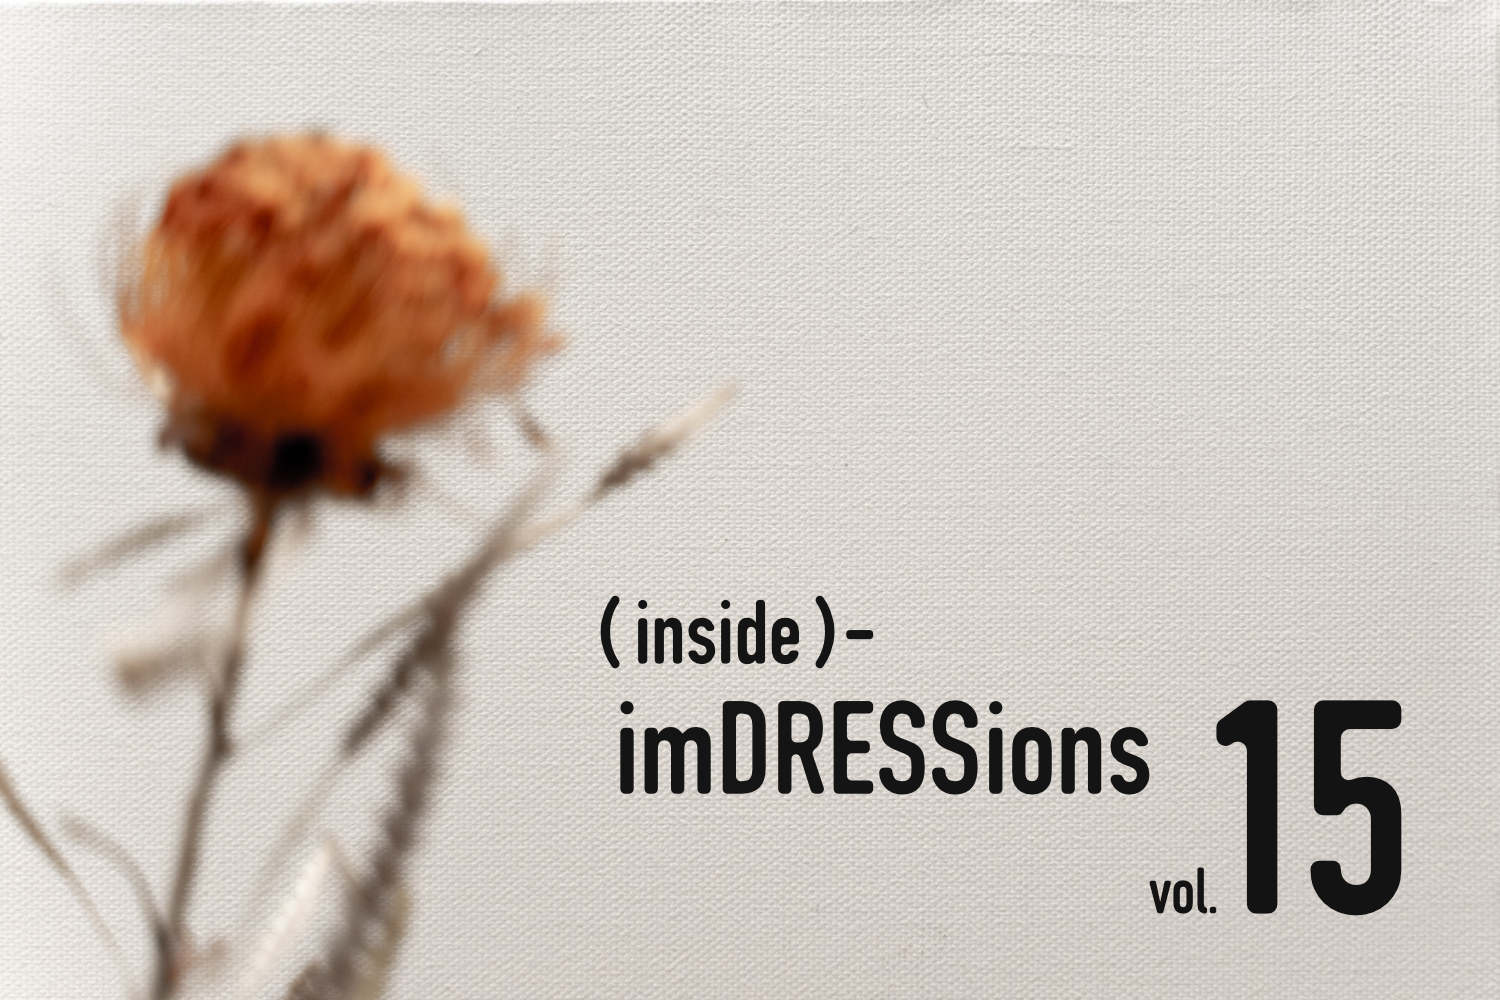 『(inside)-imDRESSions』vol.15-3年目。